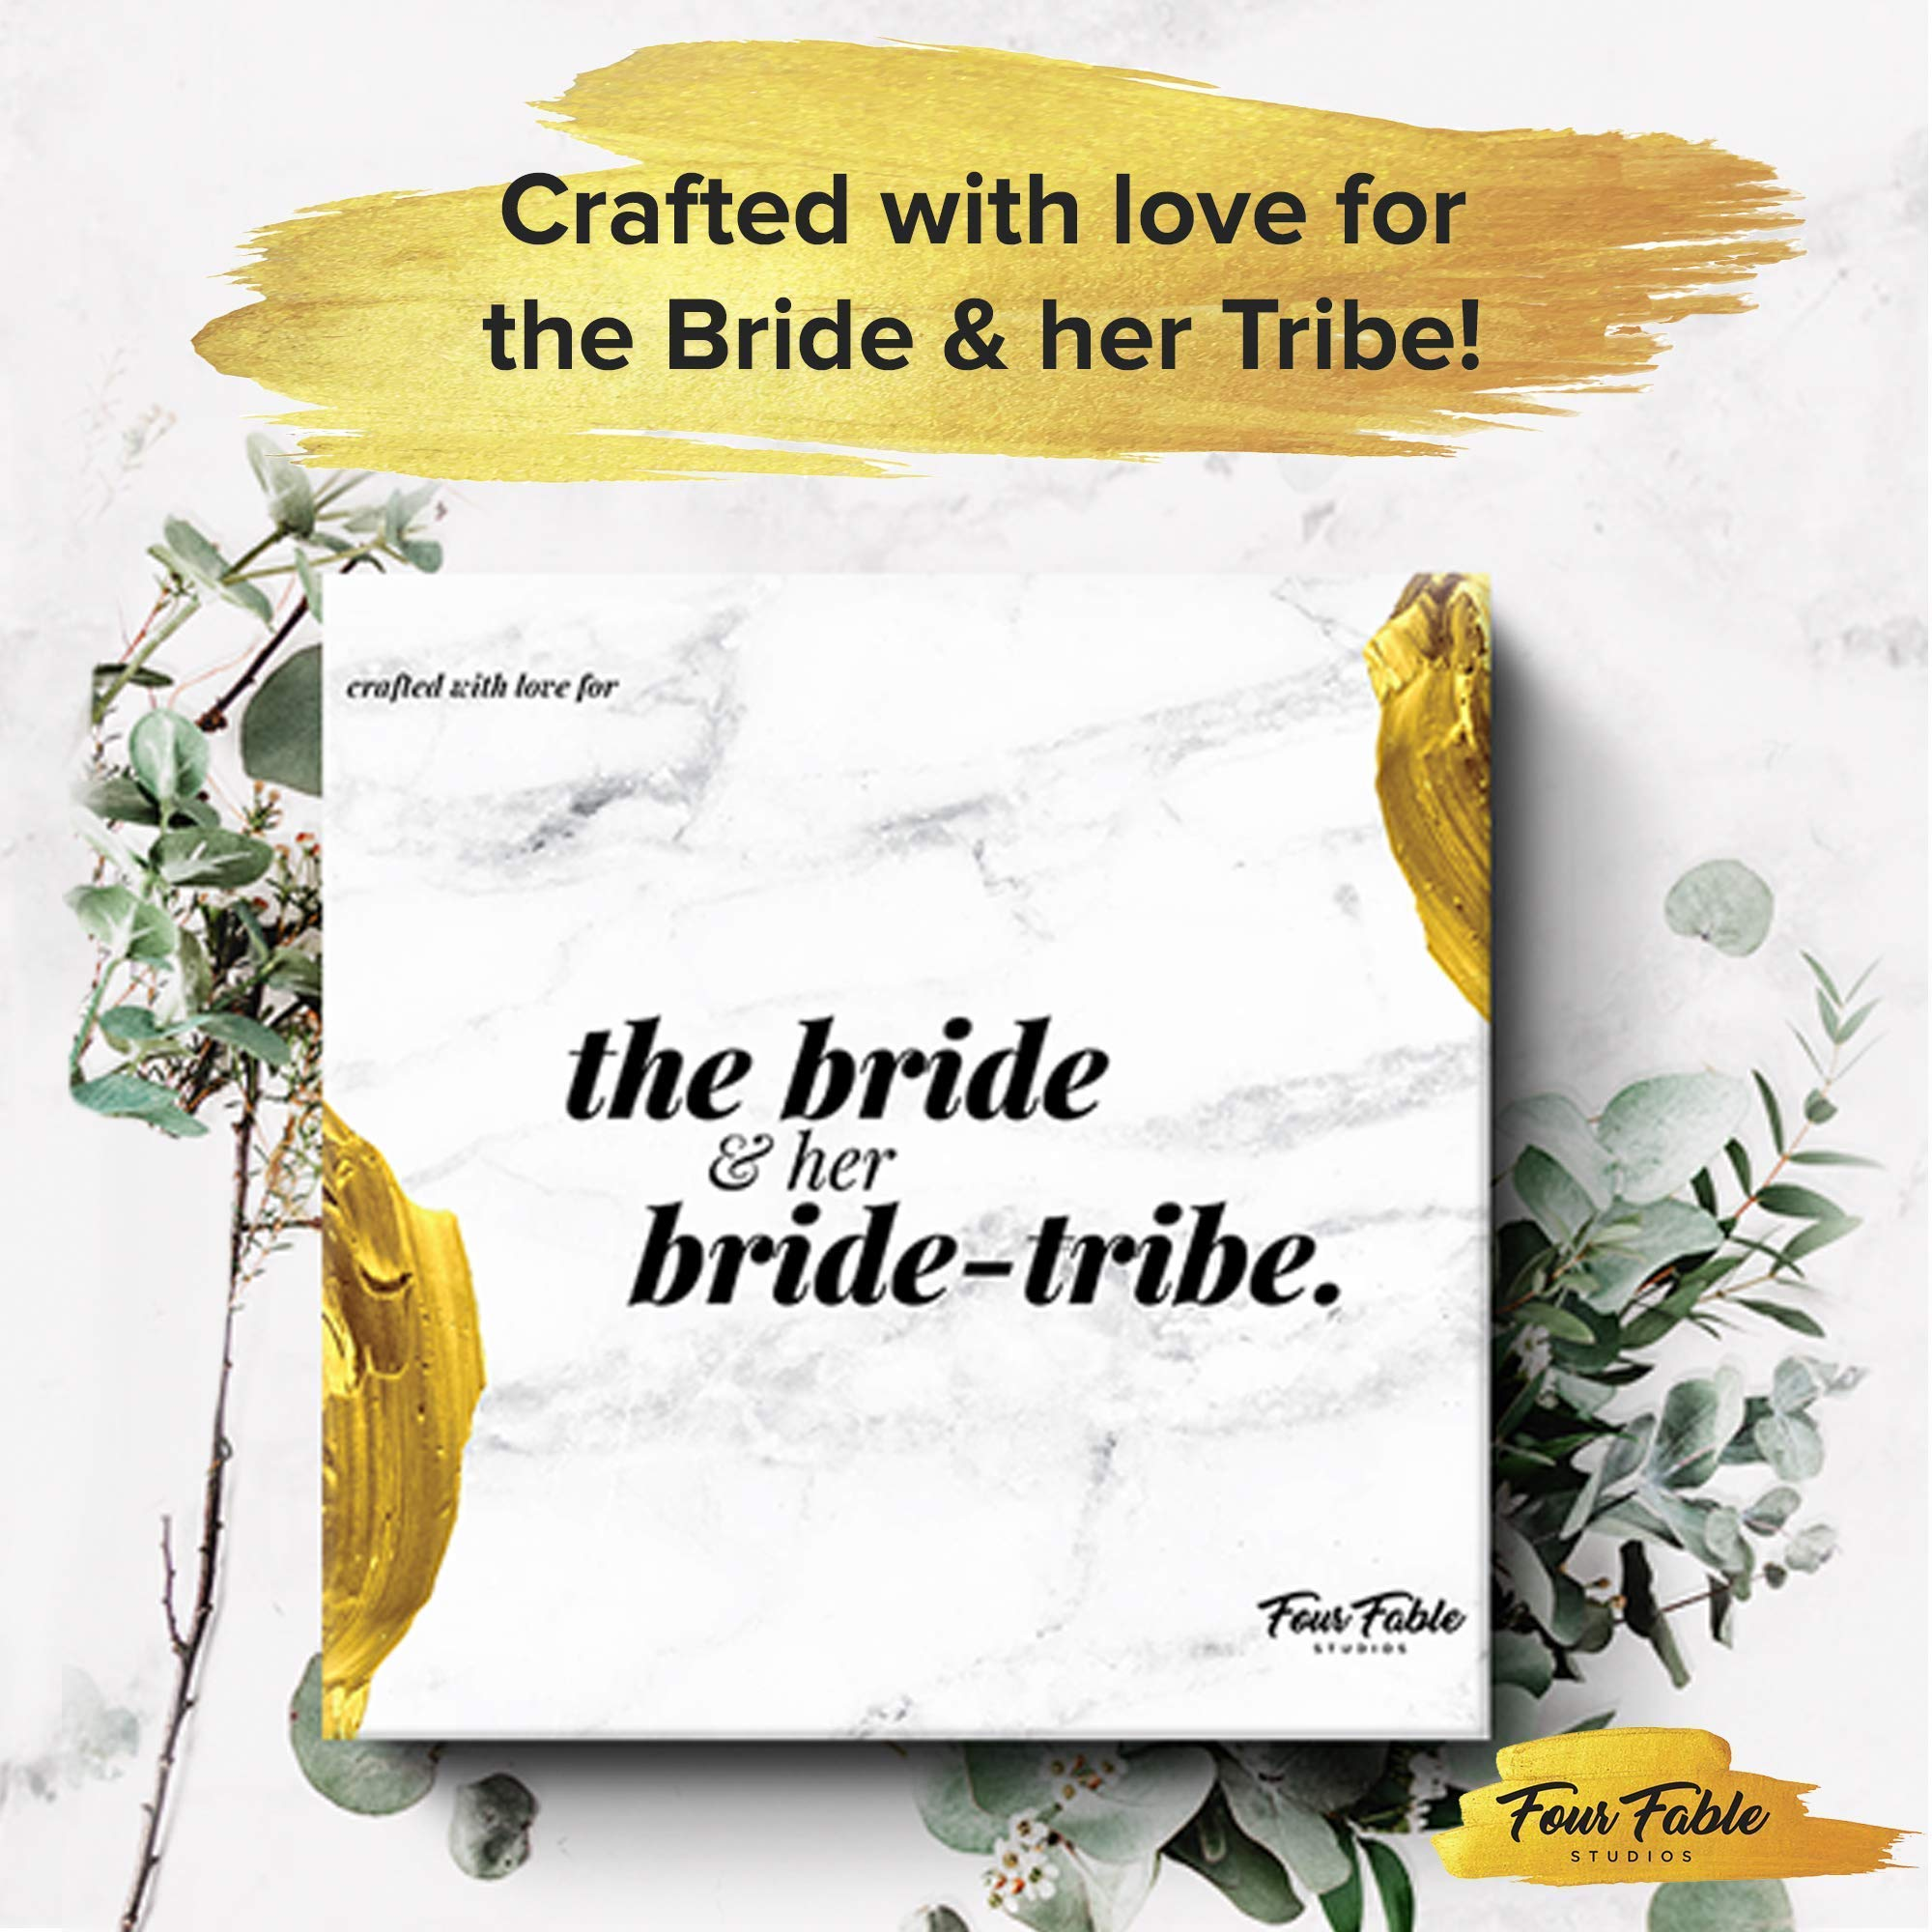 Bachelorette Party Decorations Kit by Four Fable Studios   Bridal Shower Supplies Including, Rhinestone Tiara, Rose Gold Sash, Bridal Veil with Pearls Bachelorette Banner for The Bride + Bride Tribe